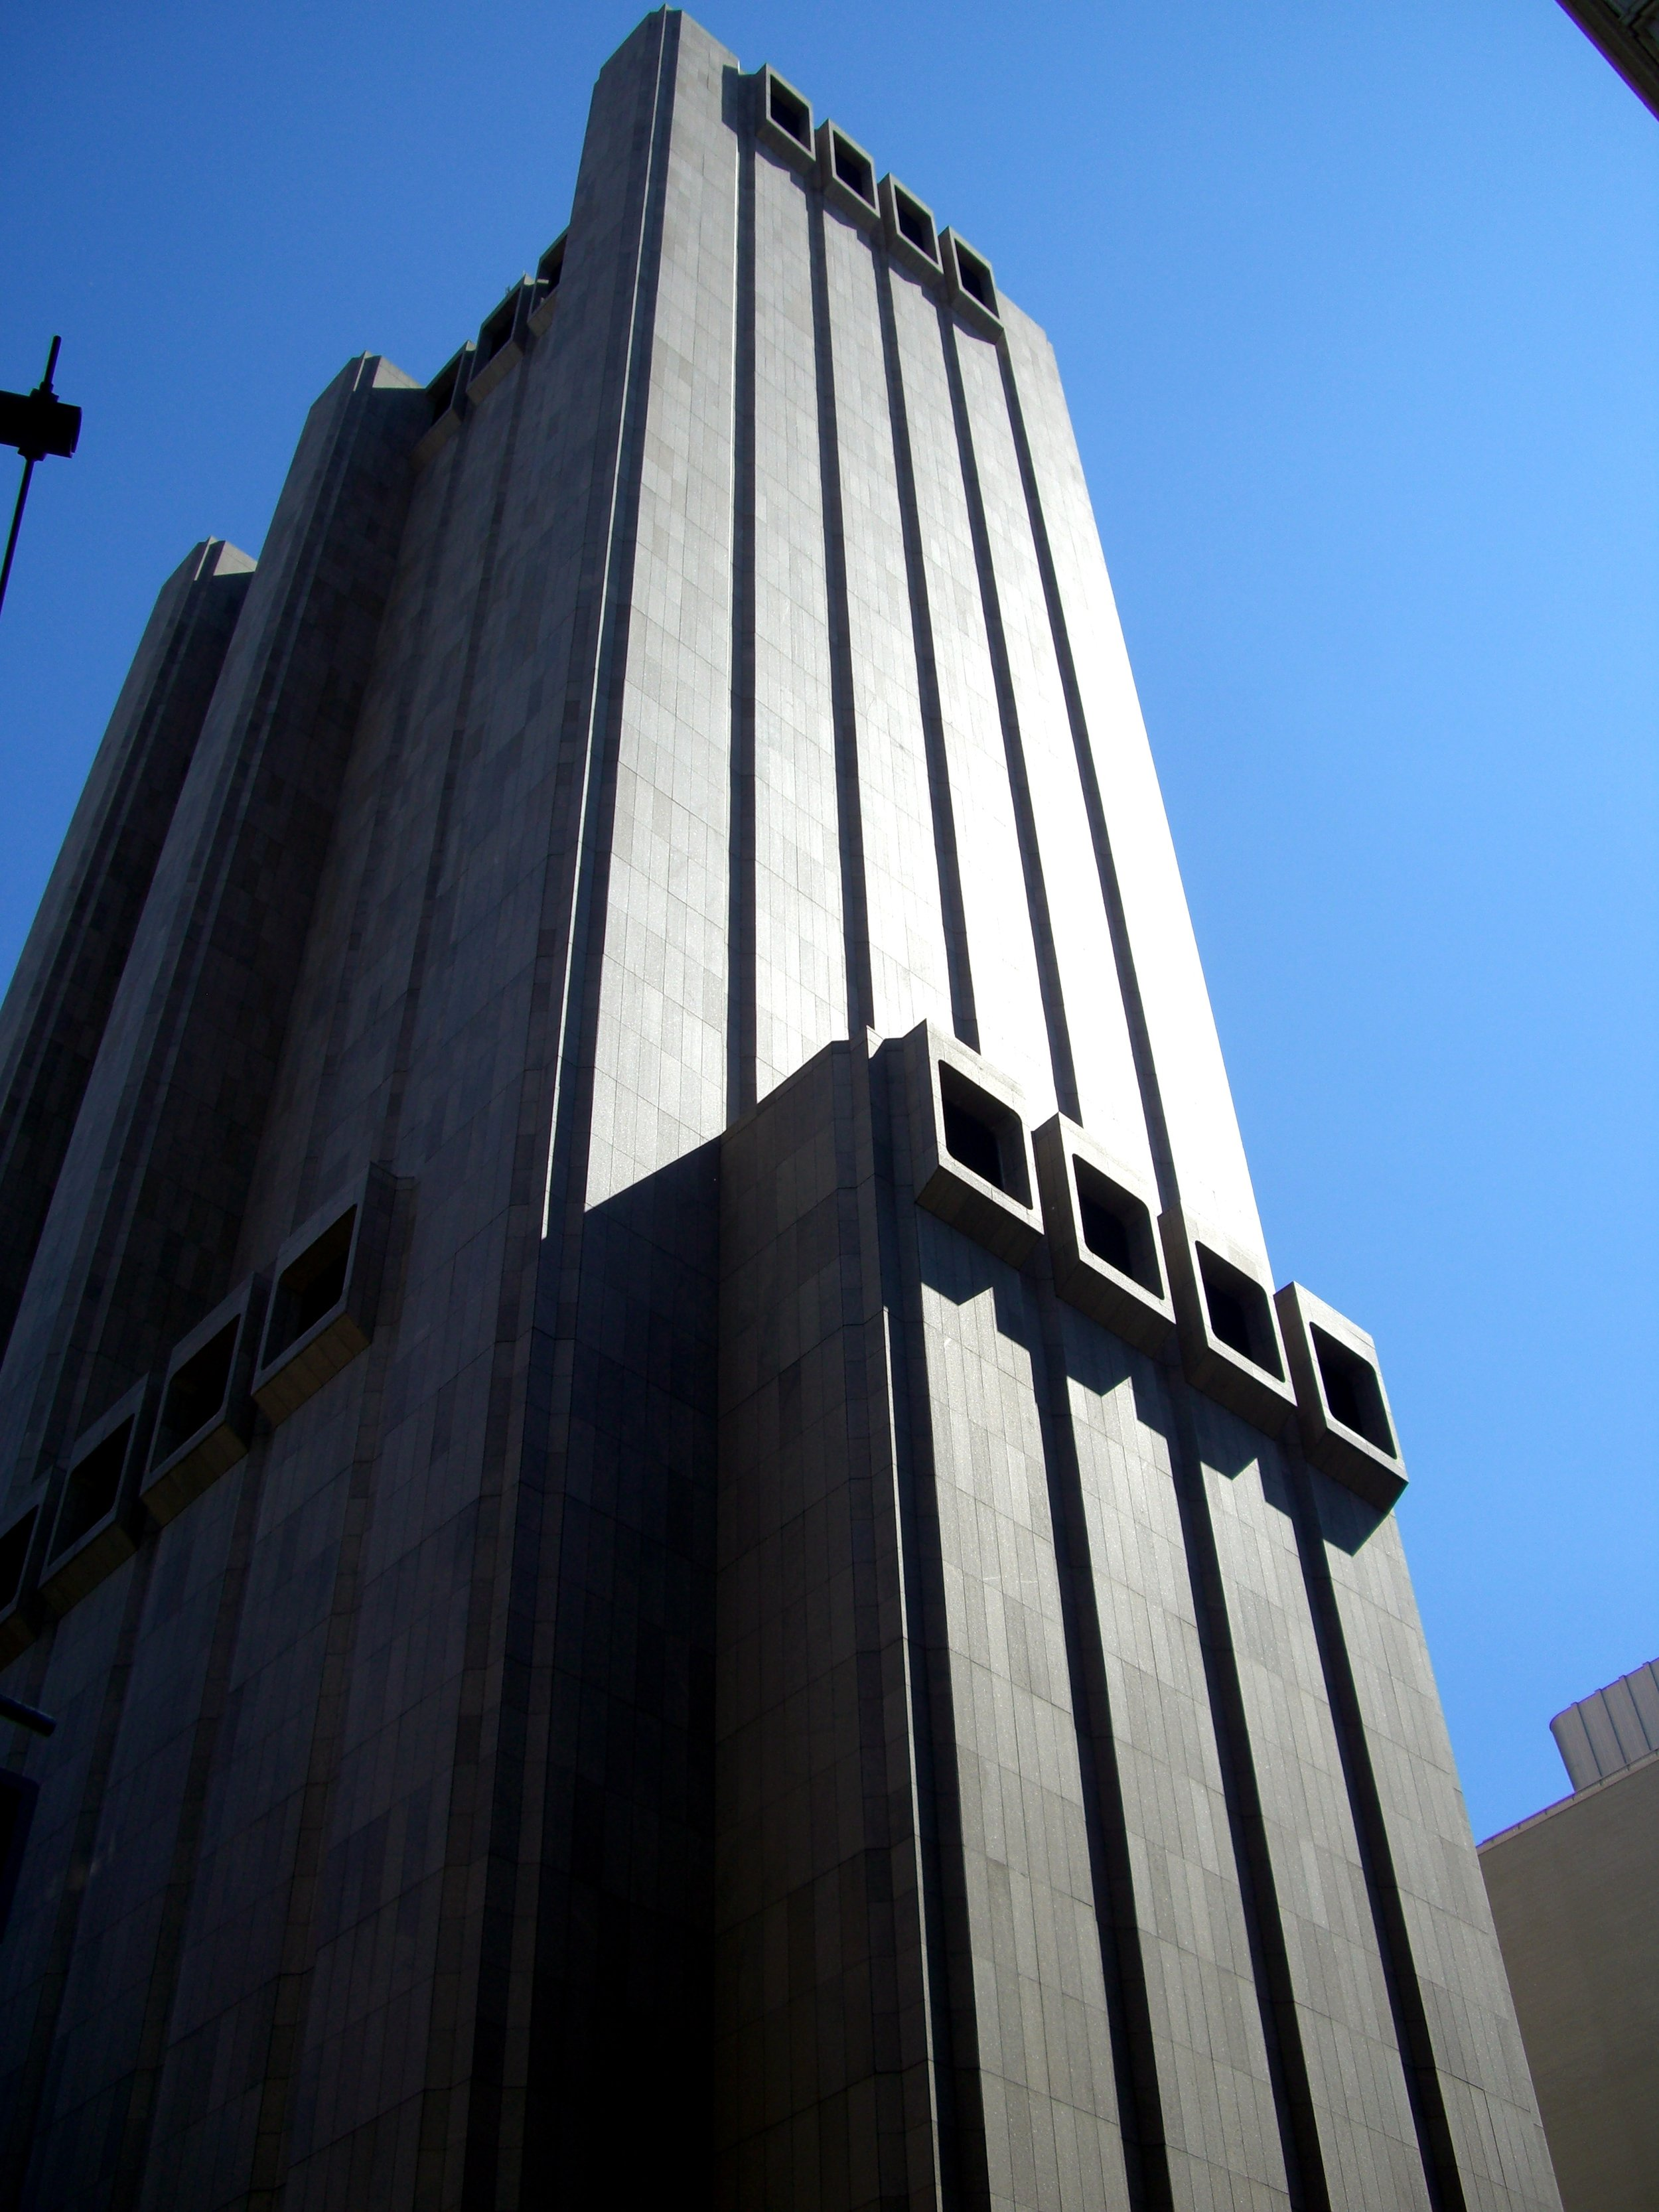 The former AT&T Long Lines Building at 33 Thomas Street is a 550-foot (167.5 meters) tall skyscraper in the Borough of Manhattan, New York, United States. It stands on the east side of Church Street, between Thomas and Worth Streets.  The building is a telephone exchange or wire center building which contained three major switches used for interexchange (long distance) telephony, two owned by AT&T and one formerly owned by Verizon (decommissioned in 2009). The building is reportedly home to a National Security Agency surveillance facility named TITANPOINTE.